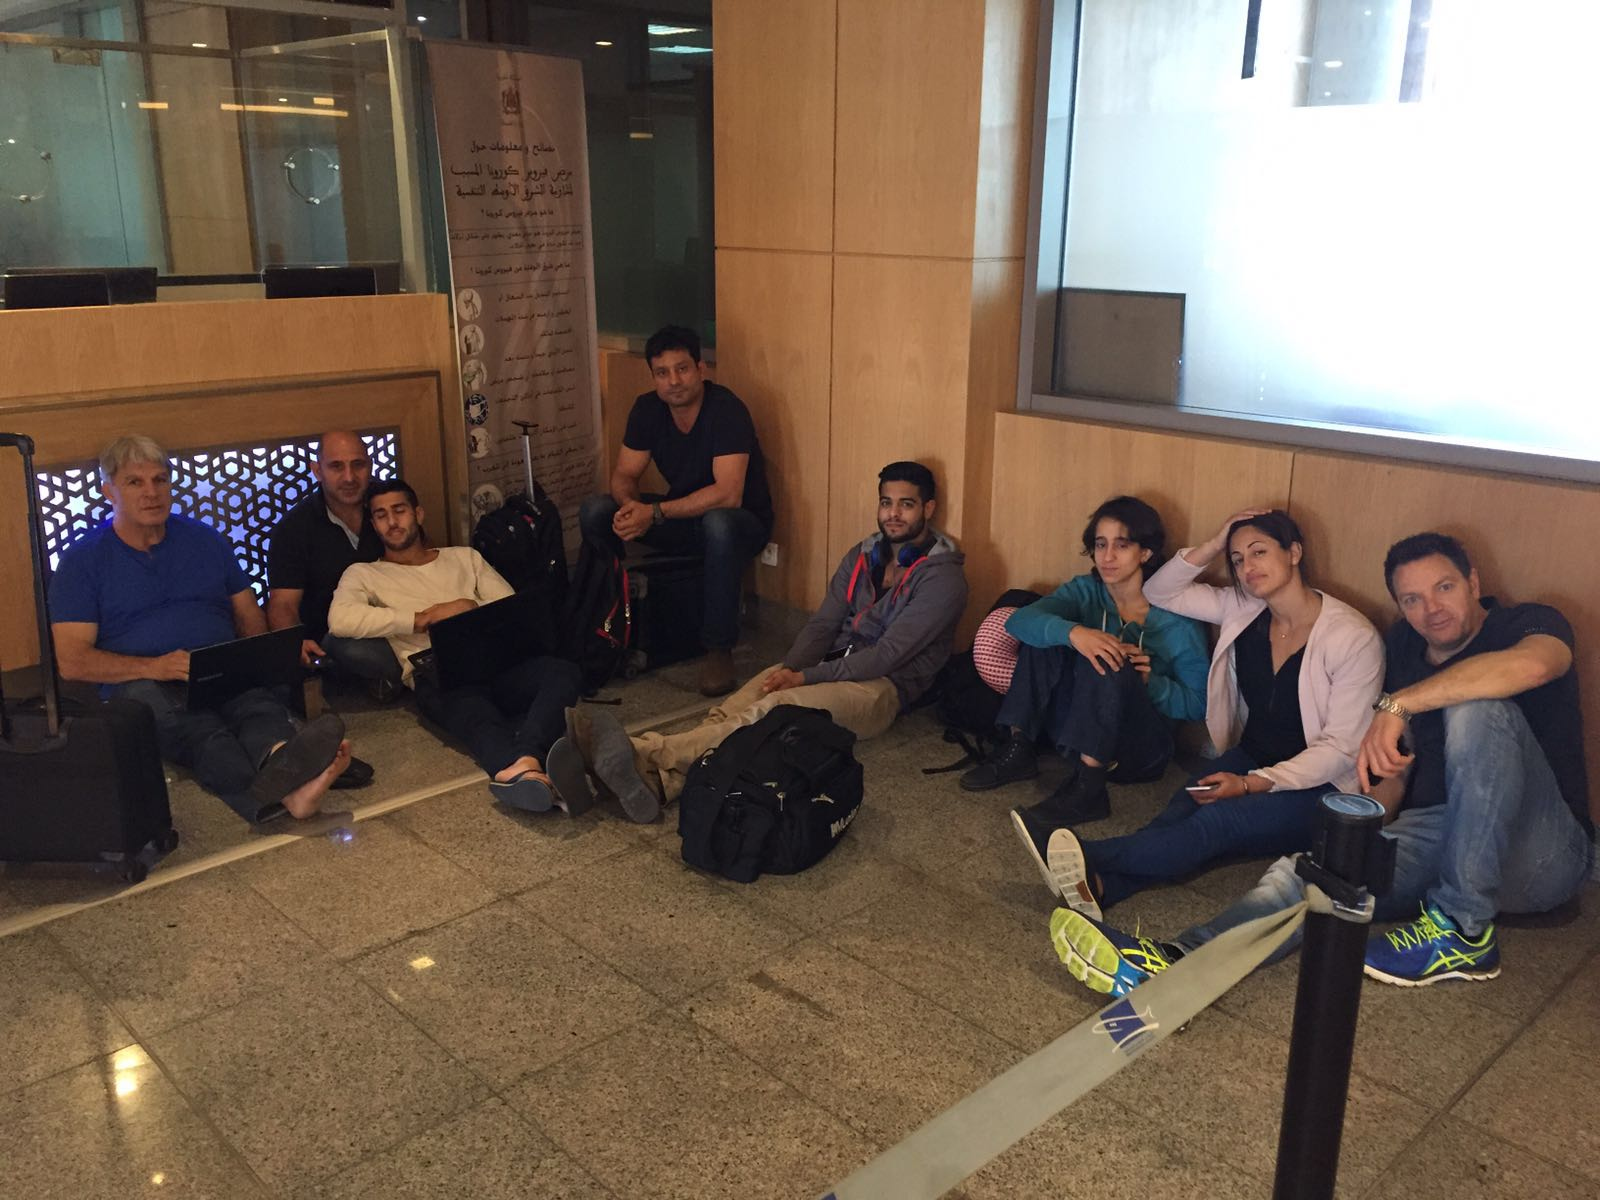 The Israeli team waiting for hours after arrival at the Morocco airport // photo Israel Judo